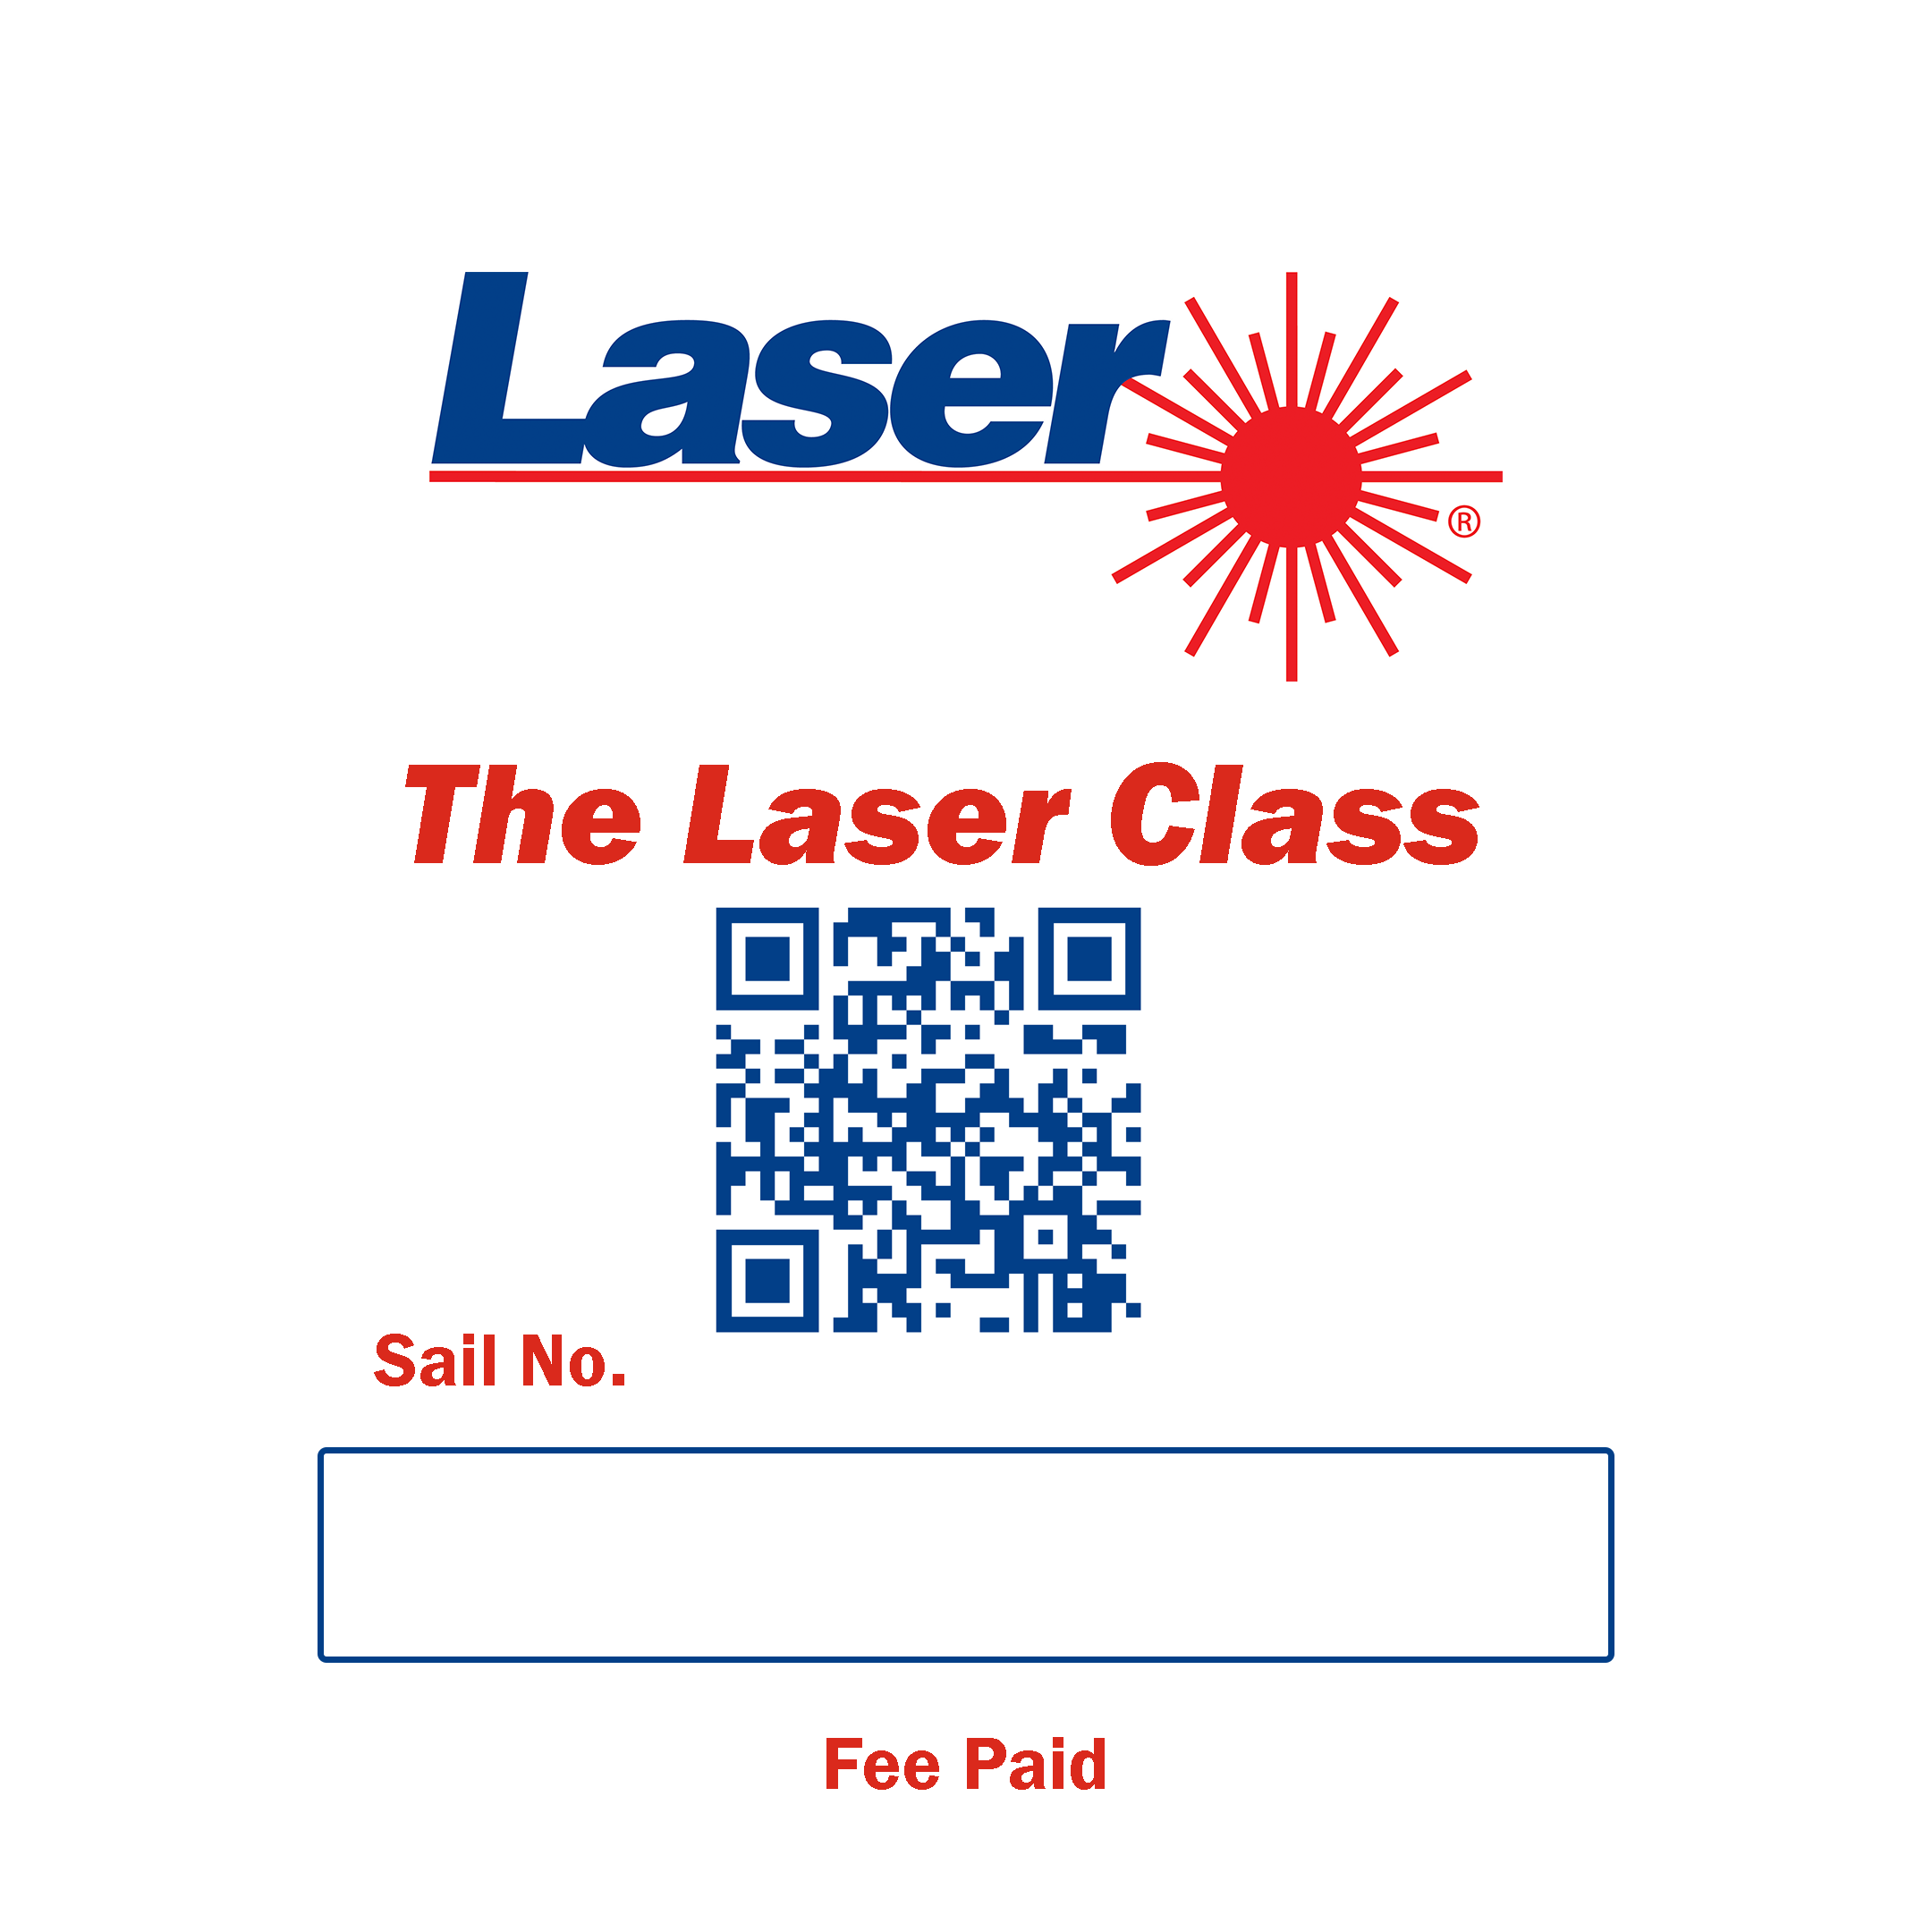 The Laser Class Plaque